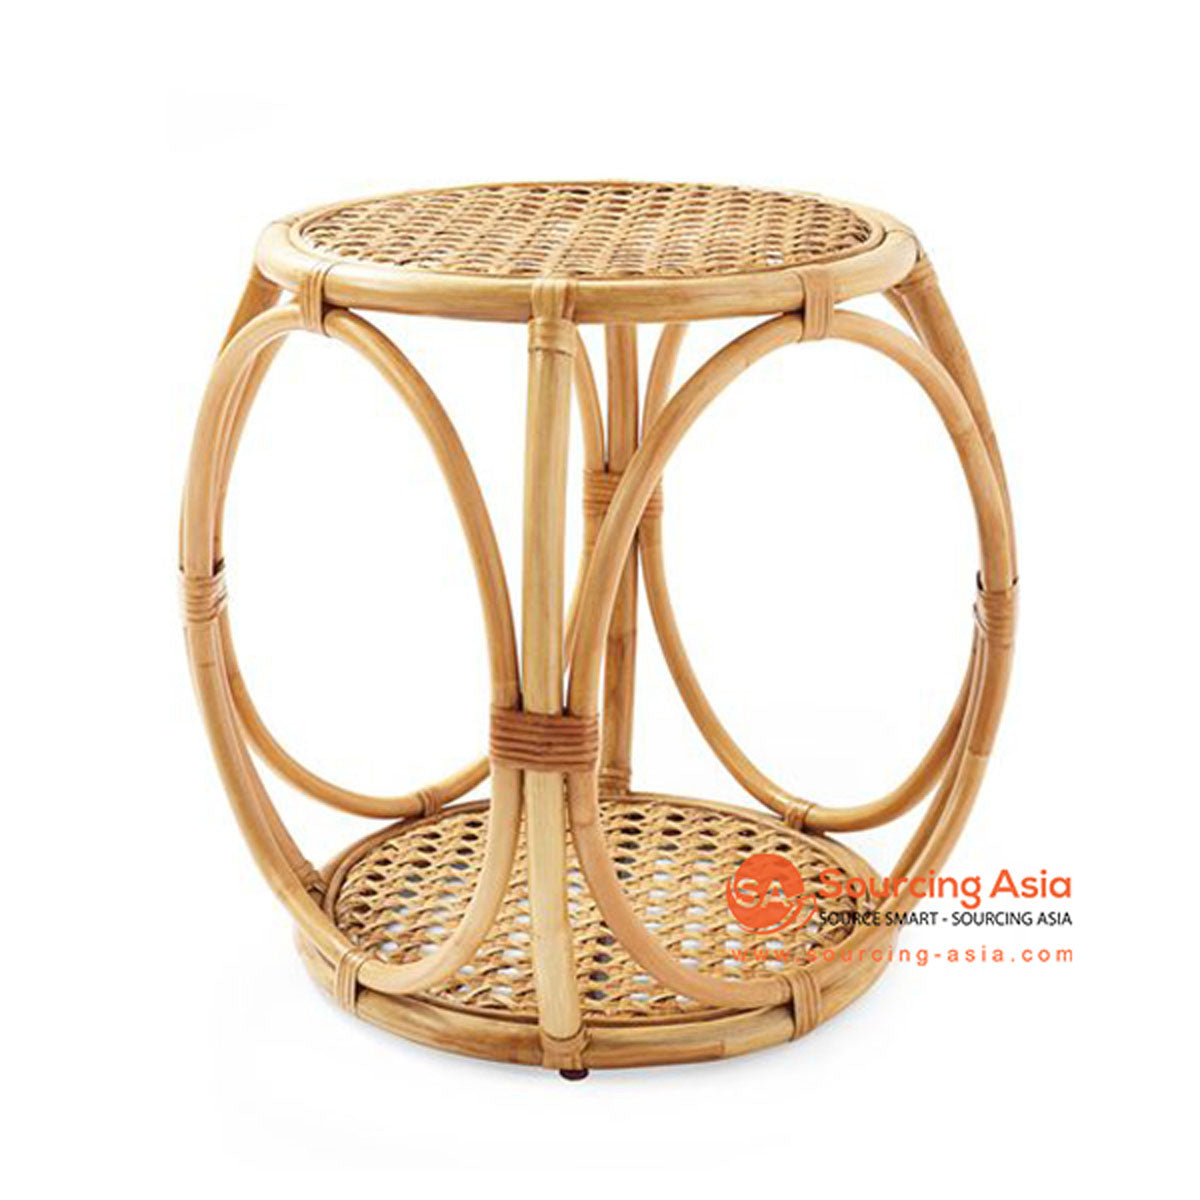 SHL160 NATURAL RATTAN DECORATIVE TABLE WITH ROUND TOP